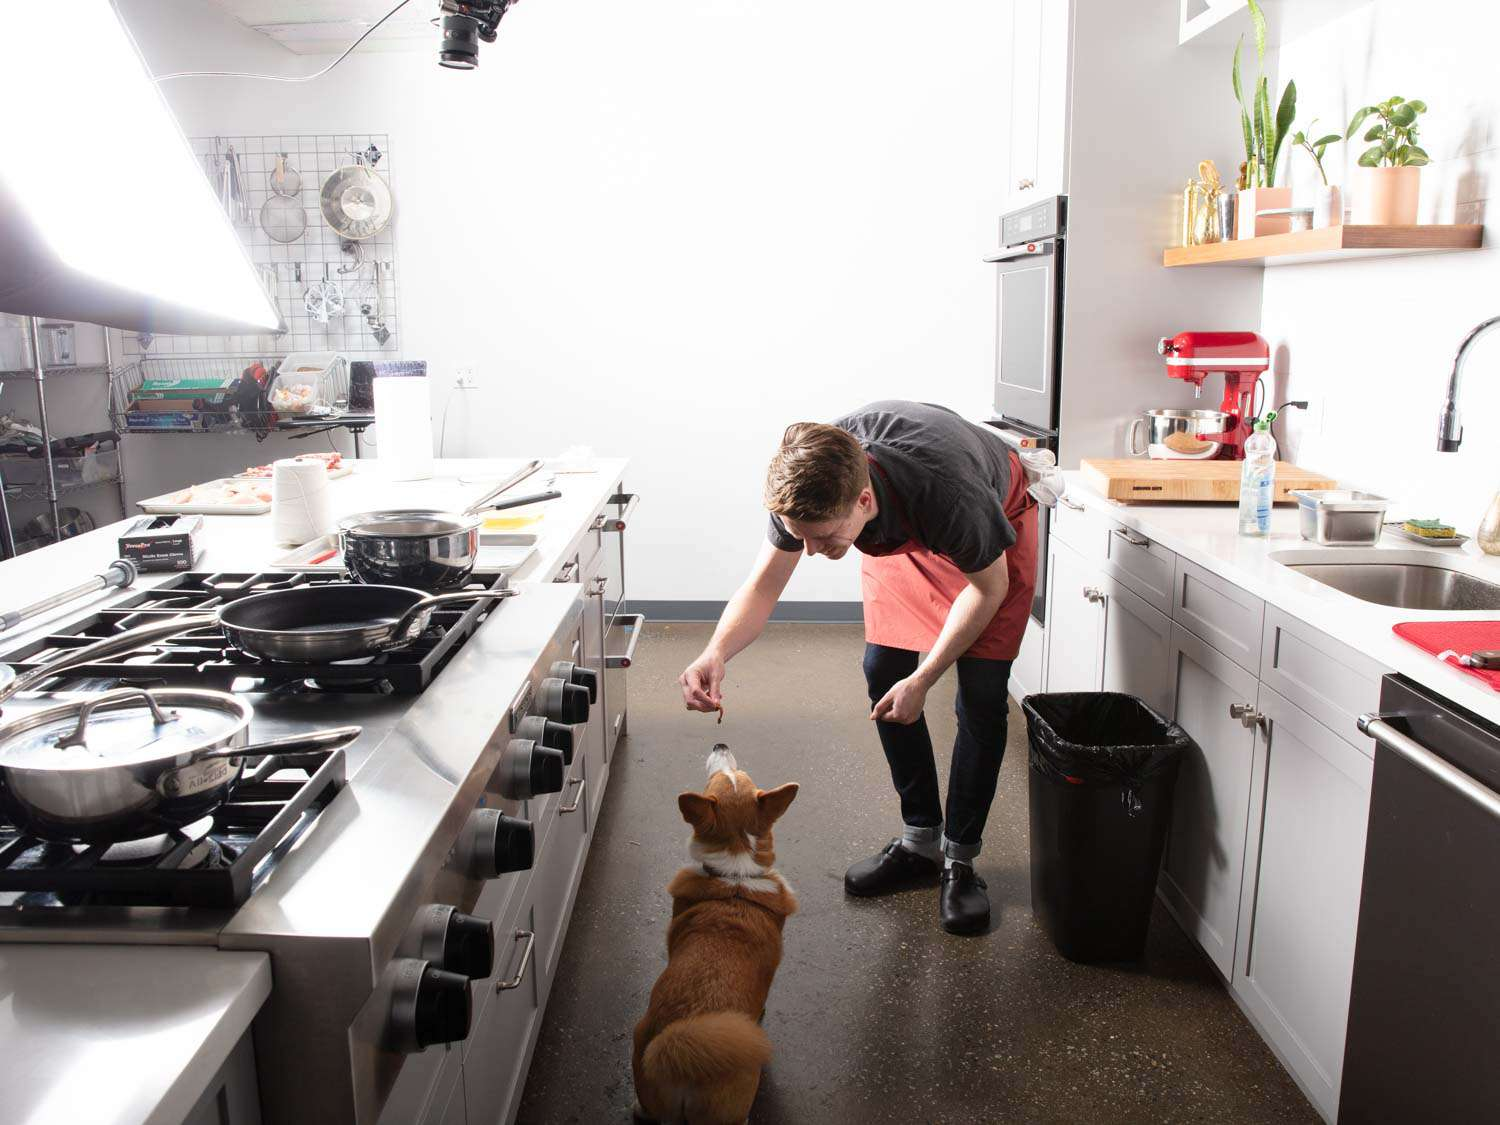 Kitchen Safety 101 How To Prevent Cuts Burns And Other Injuries